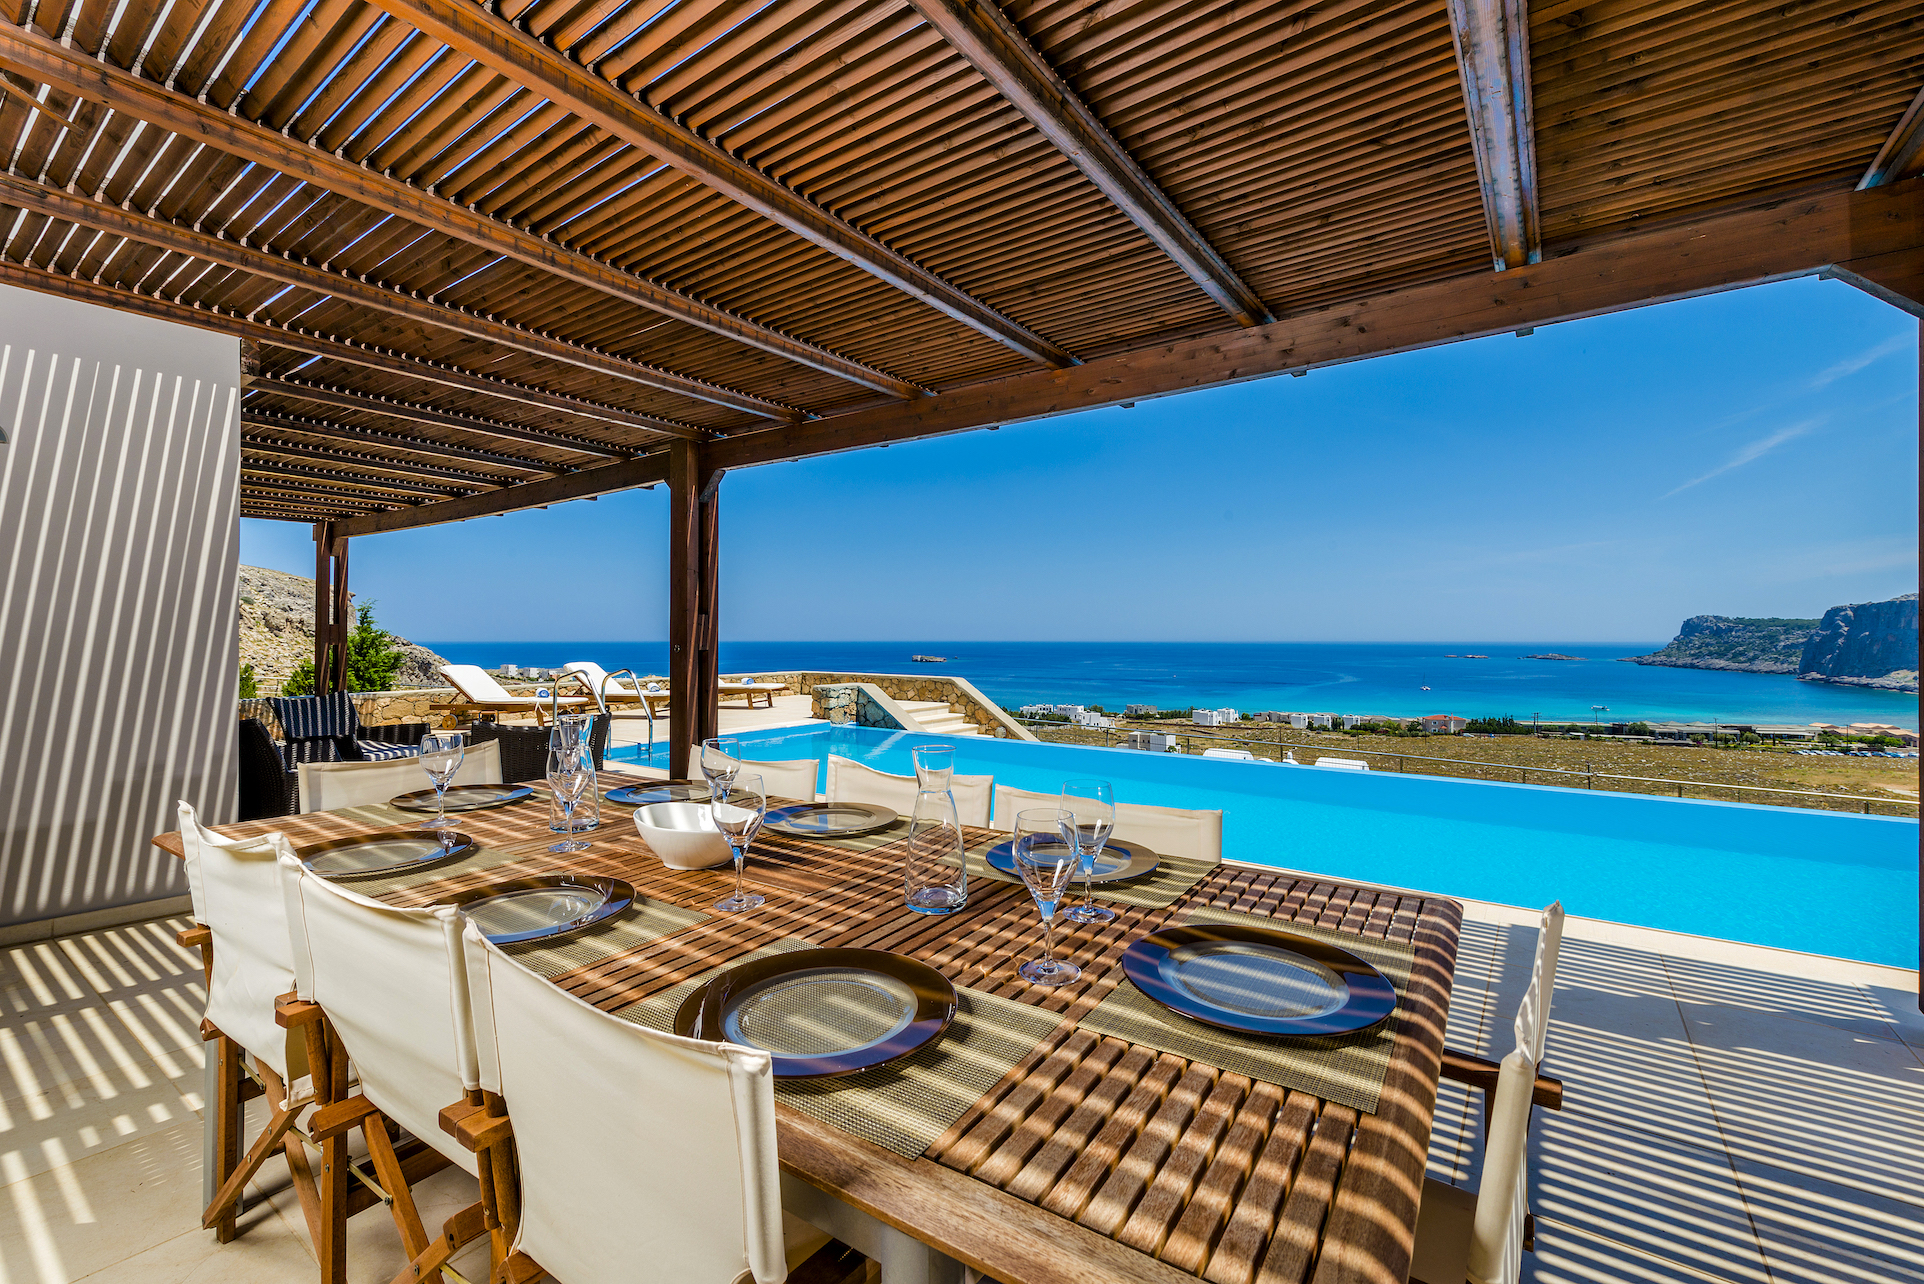 Single Family Home for Sale at Jet Set Psaltos Rhodes, Southern Aegean, 85133 Greece